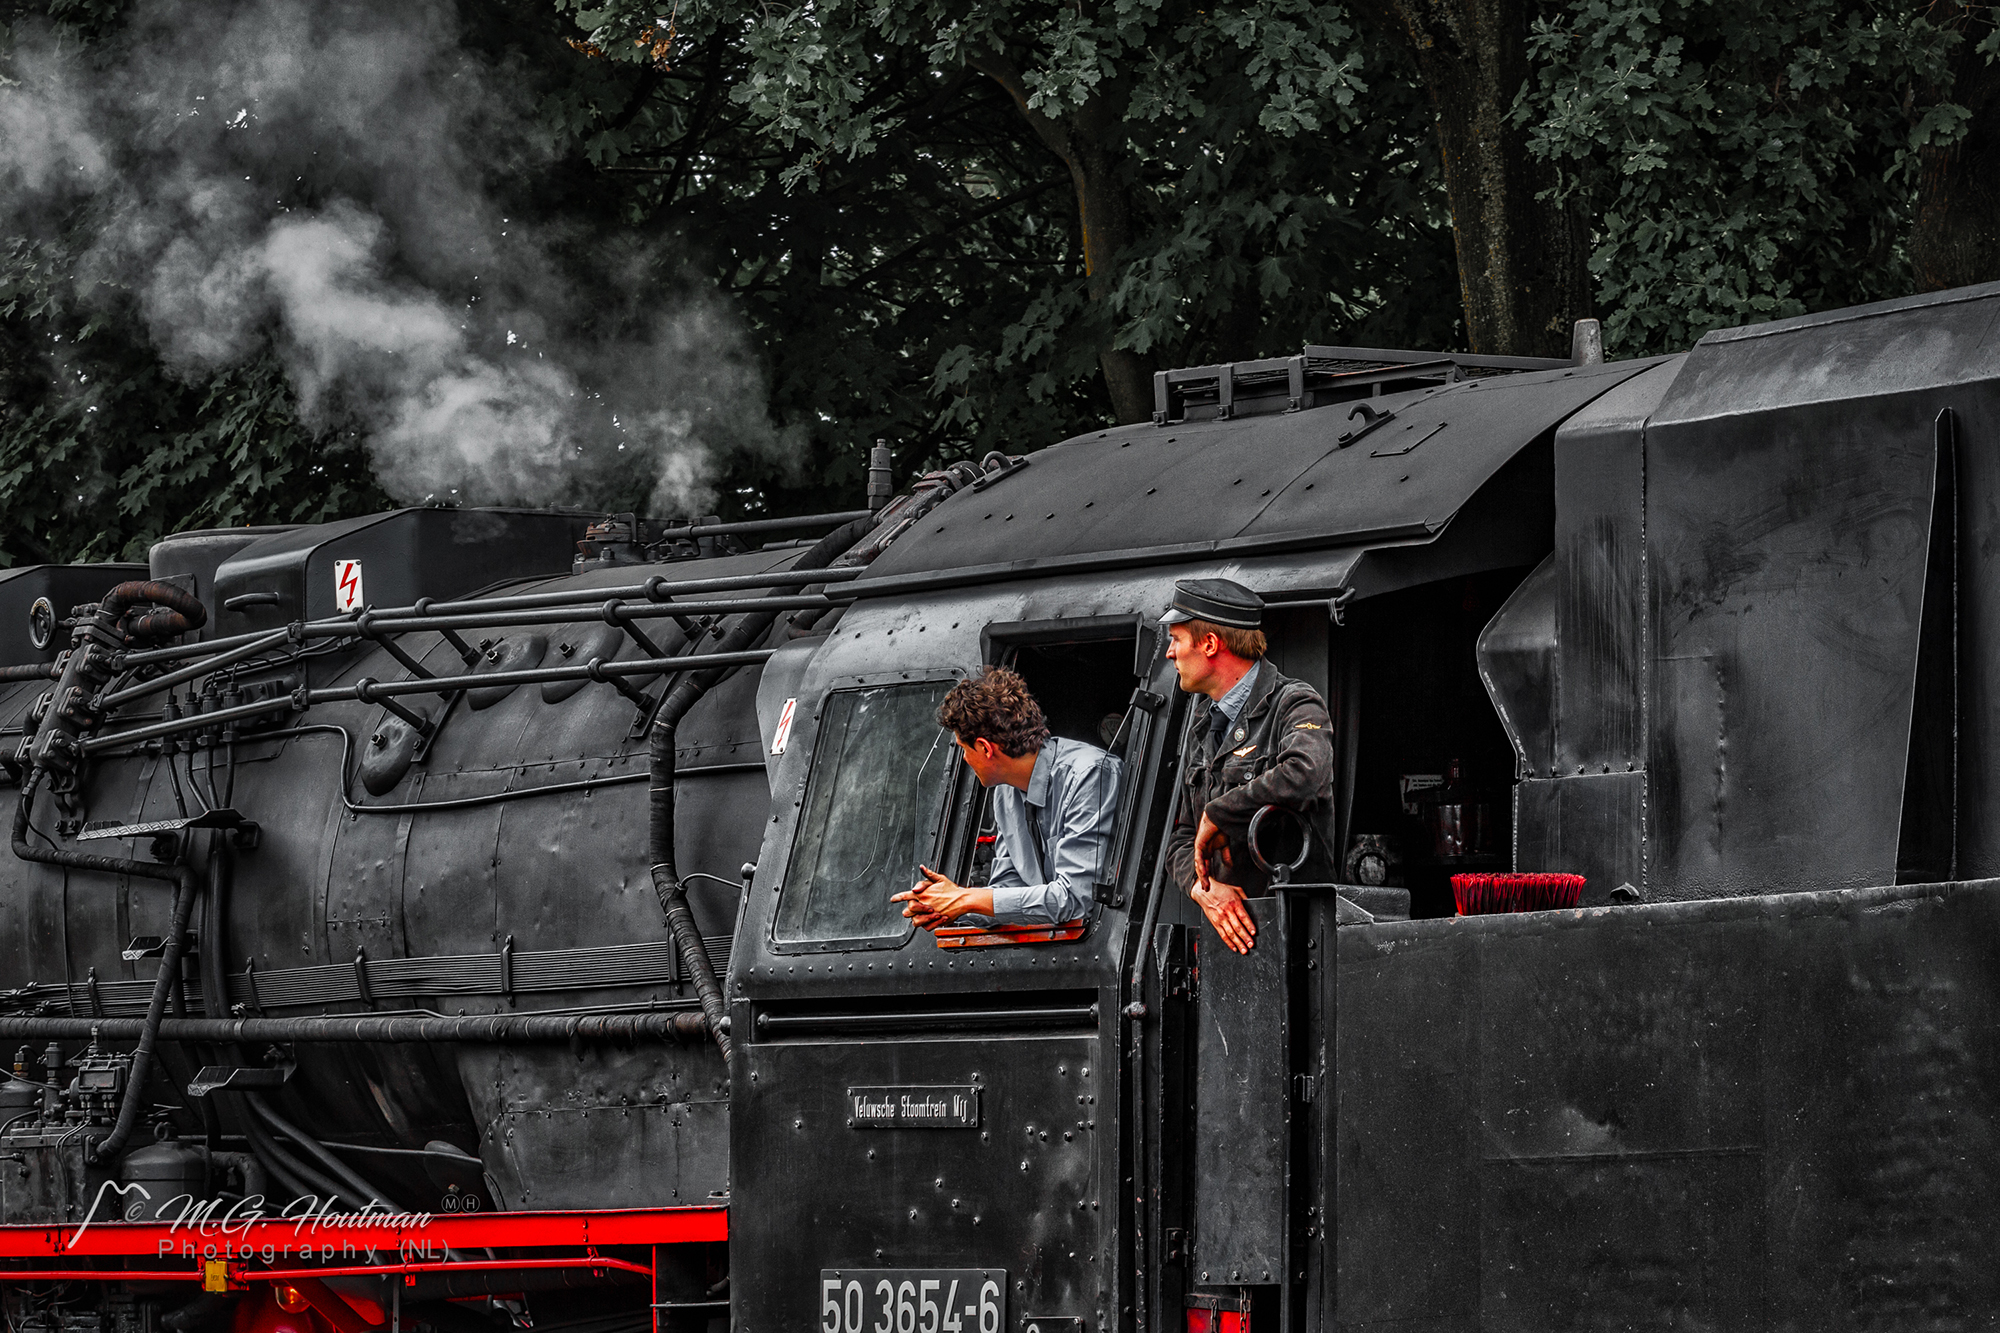 Old steamtrain (NL)